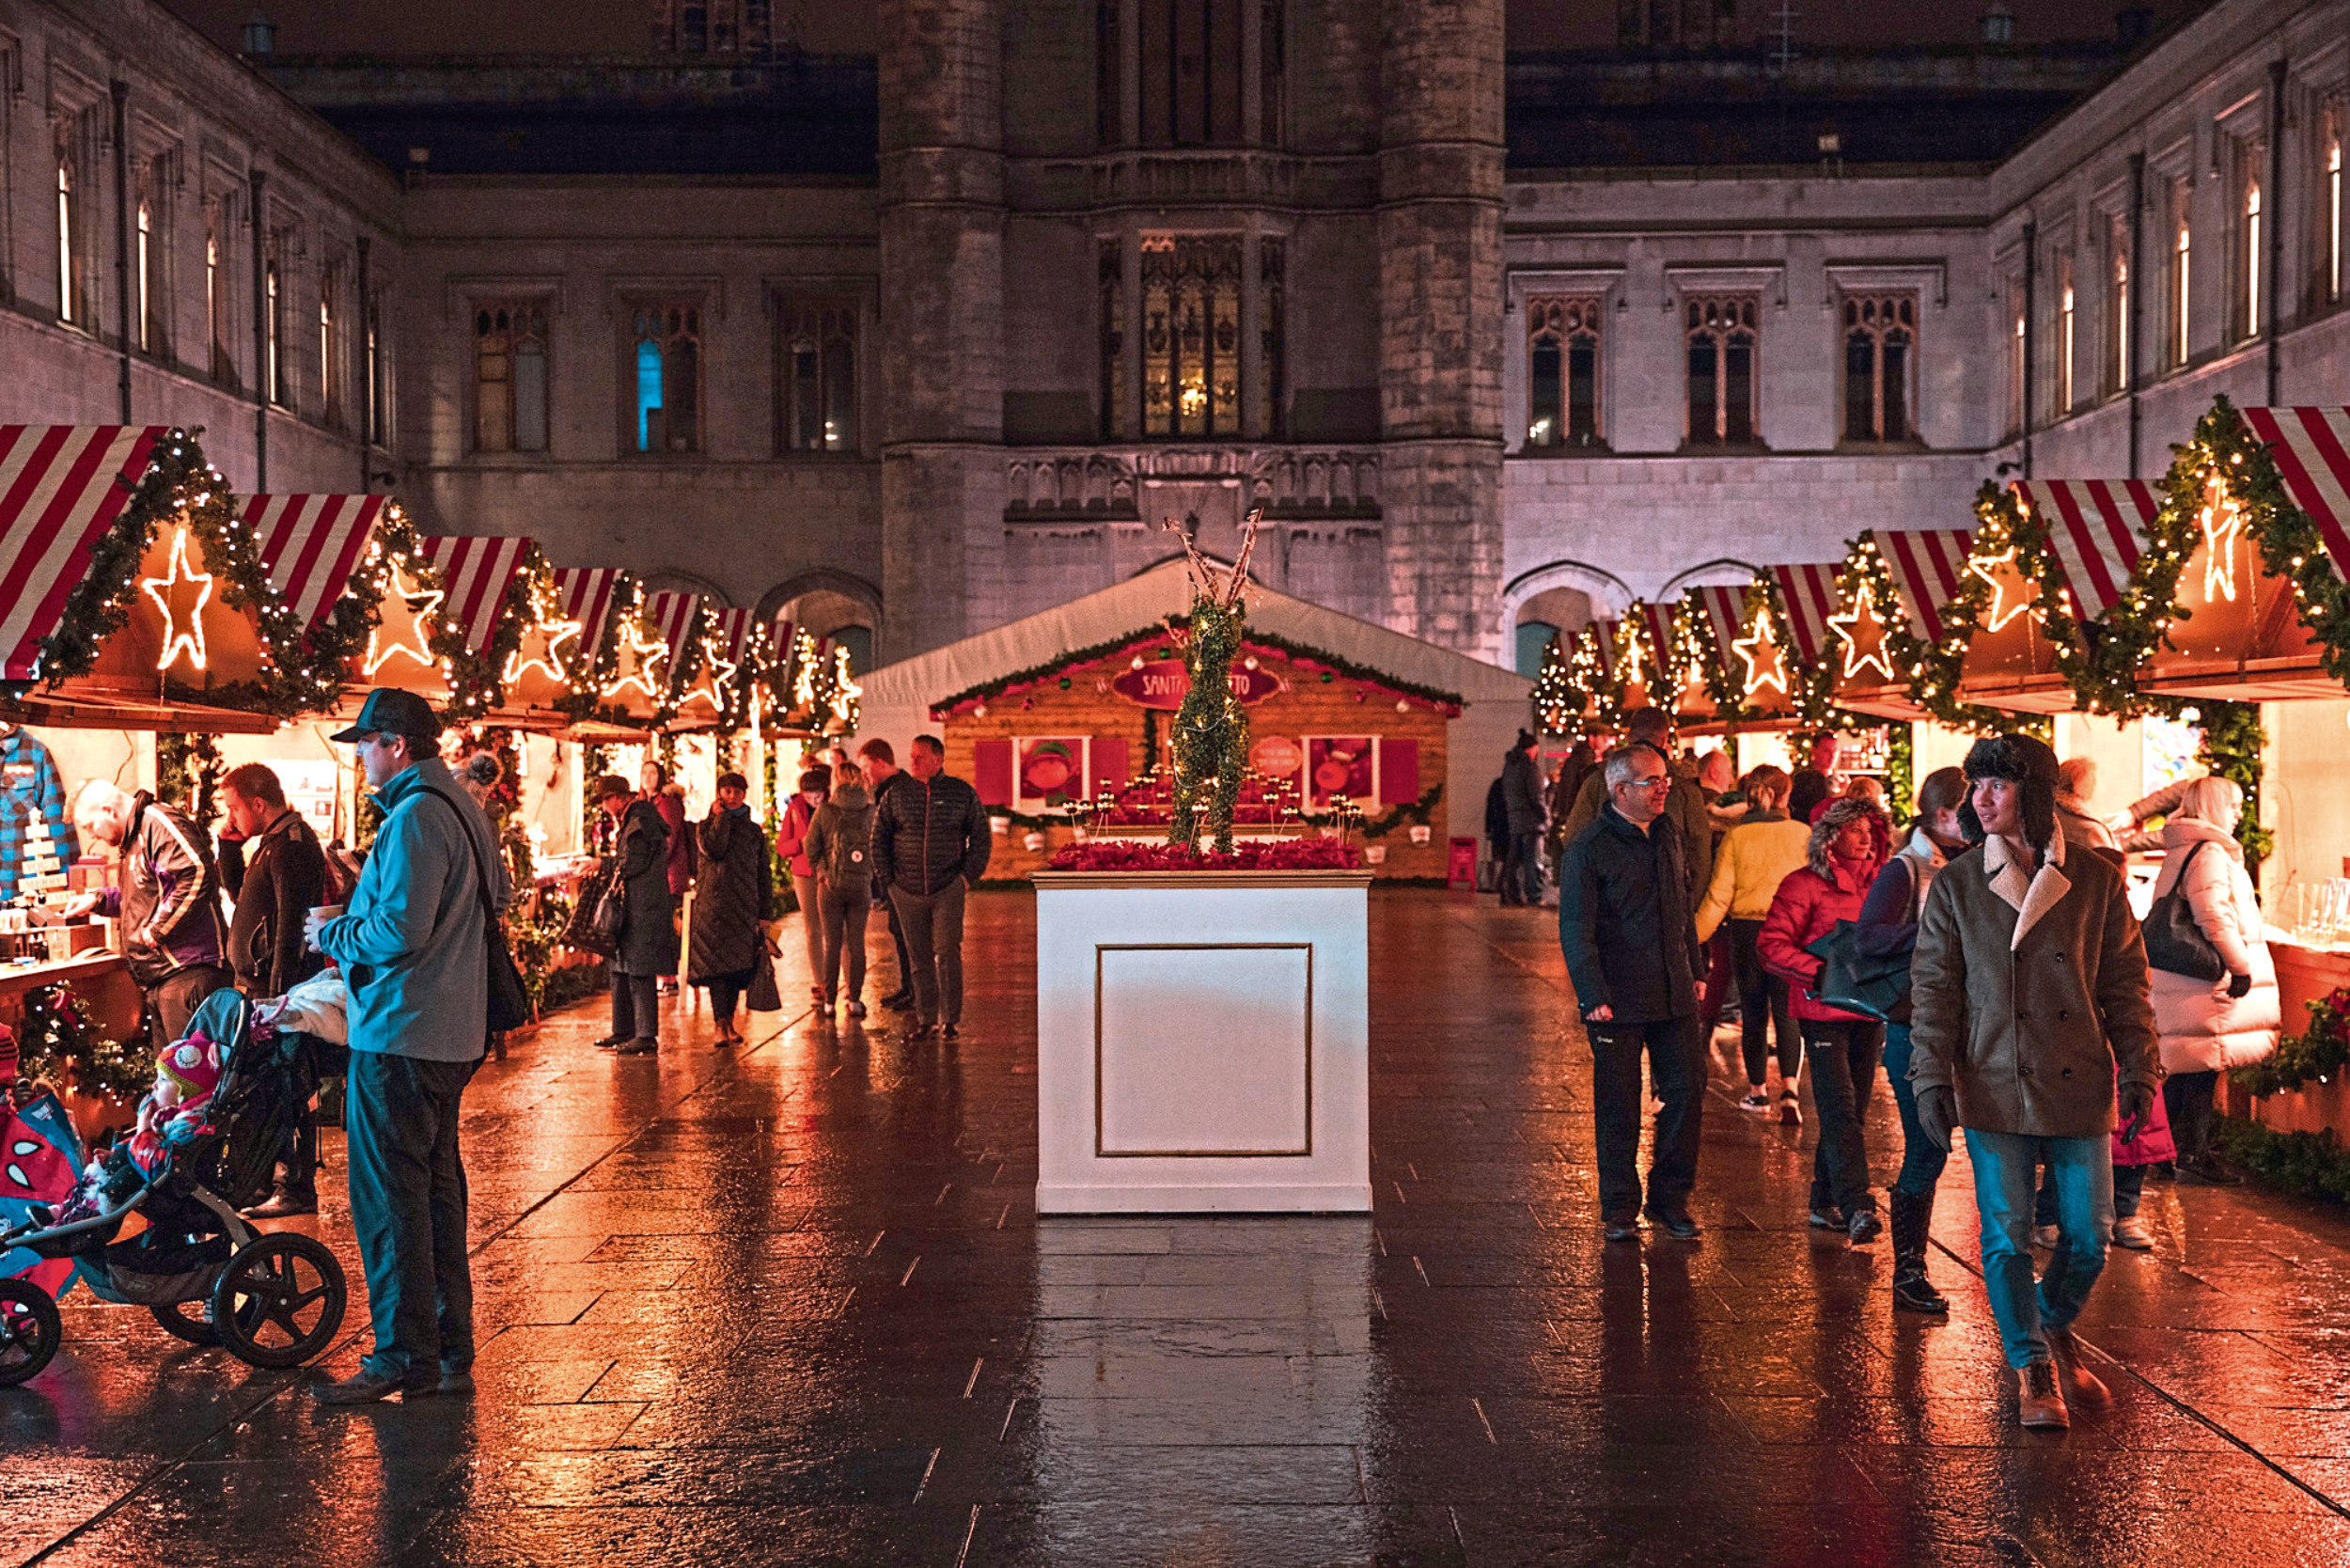 Aberdeen Christmas village in Broad Street forms the centrepiece for the winter festival programme